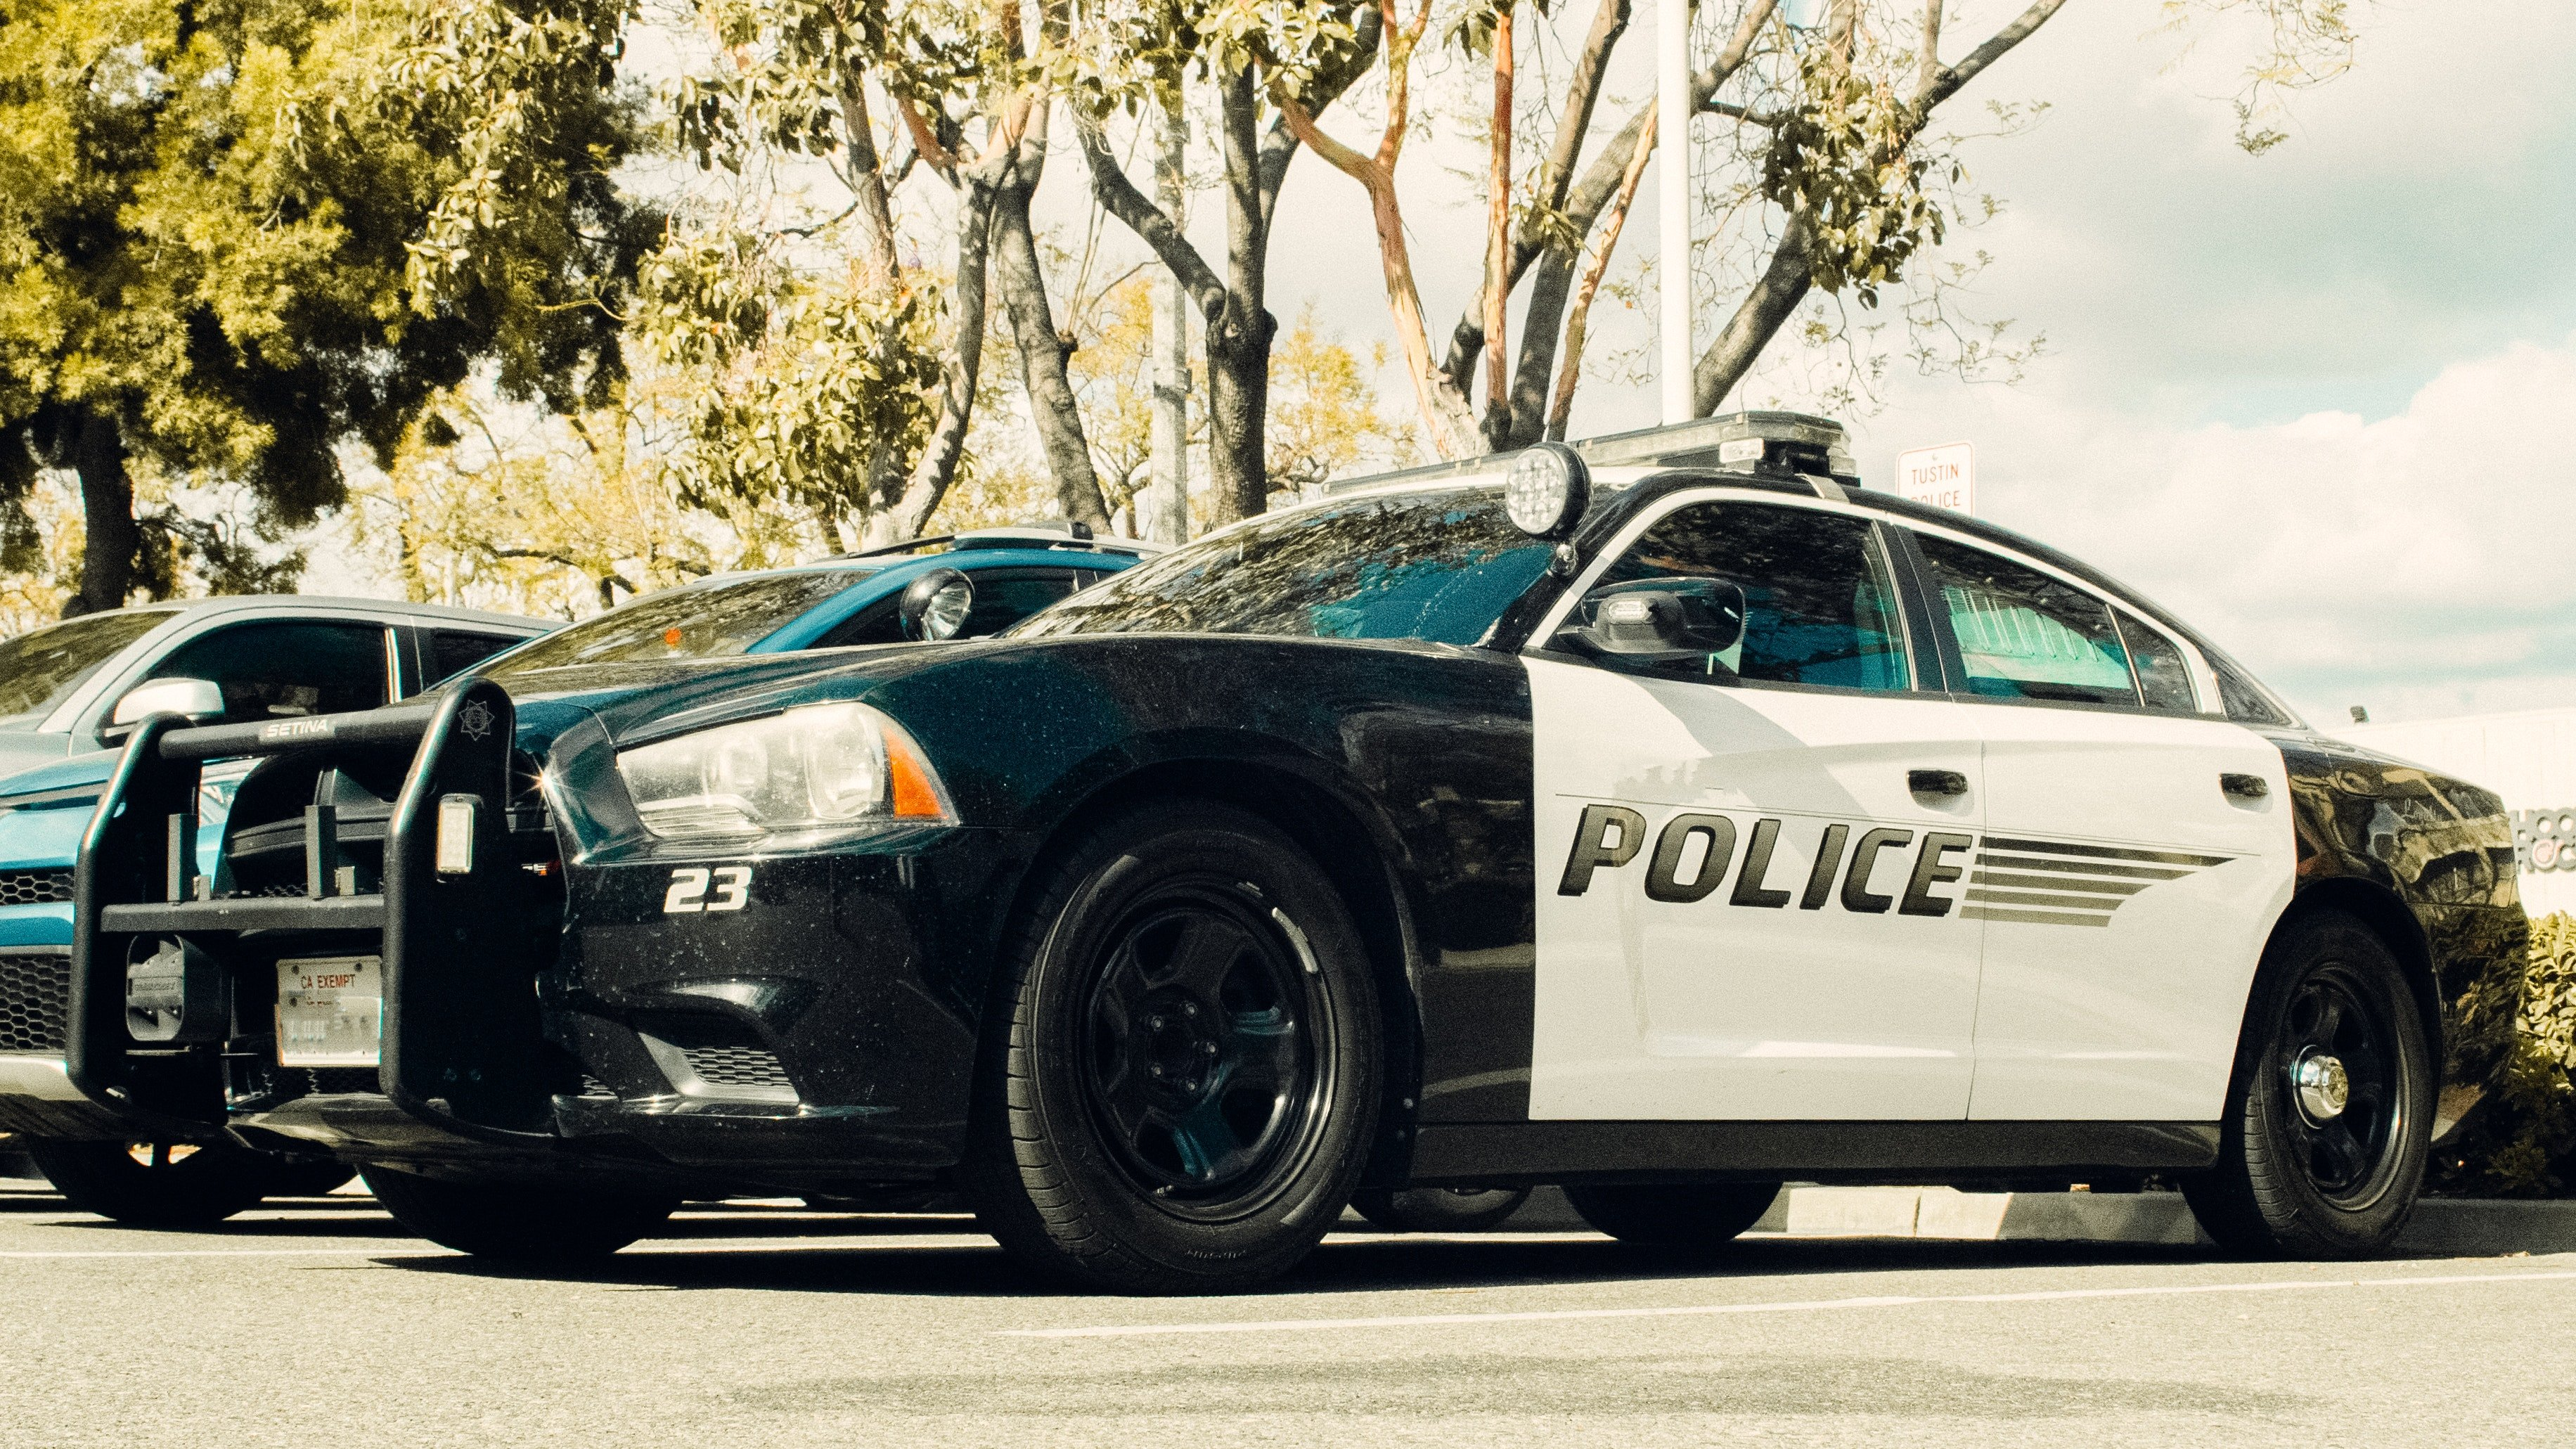 Pictured - A photo of a parked black and white police vehicle | Source: Pexels